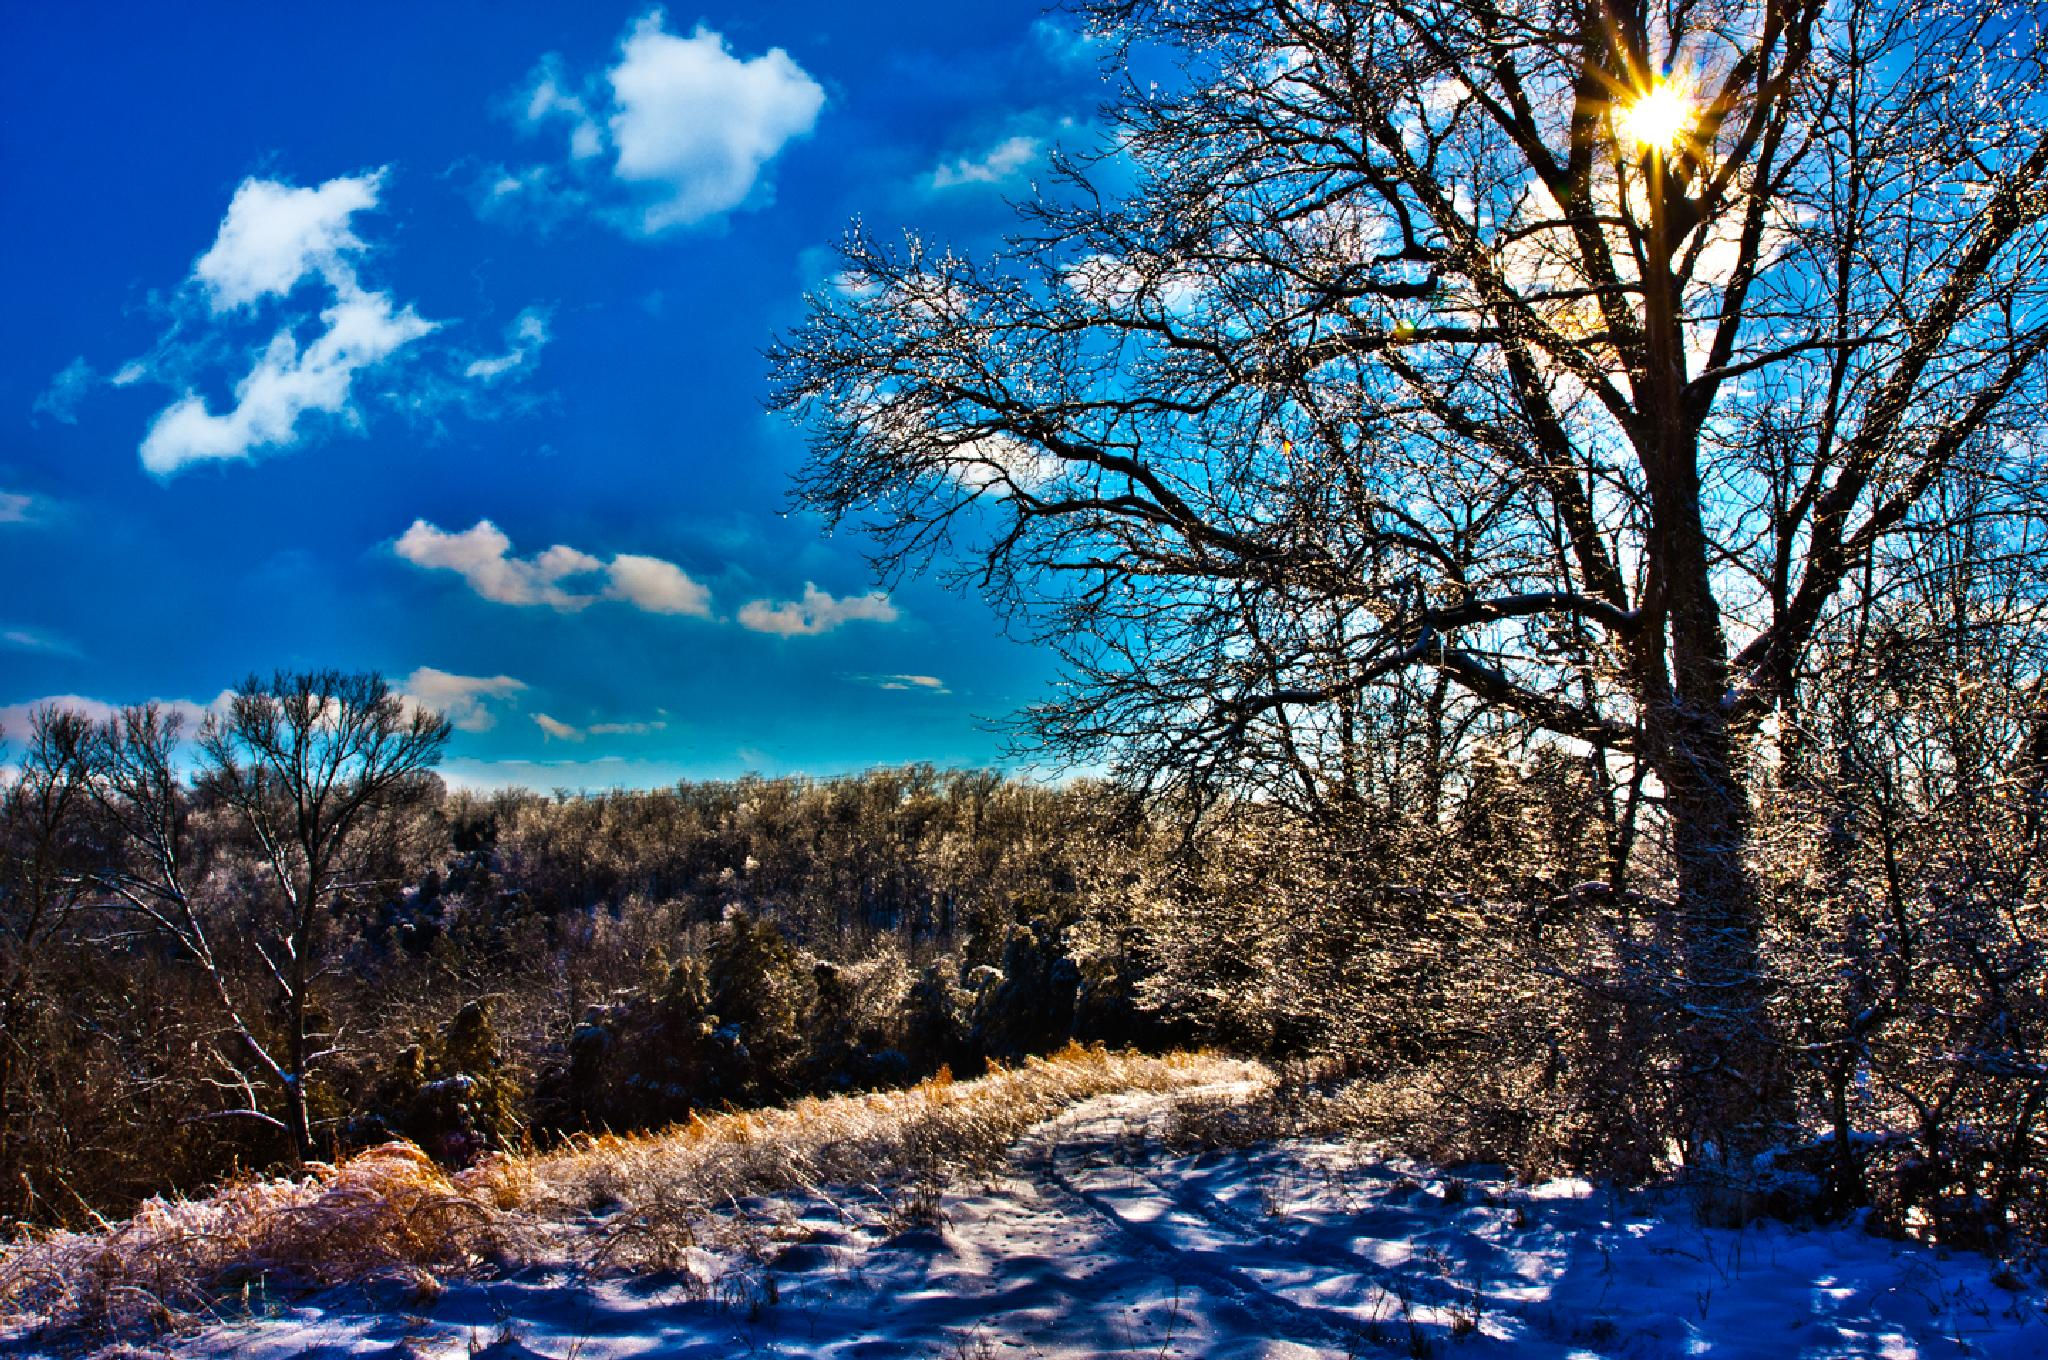 Iced Trees and Sun by Gene Linzy